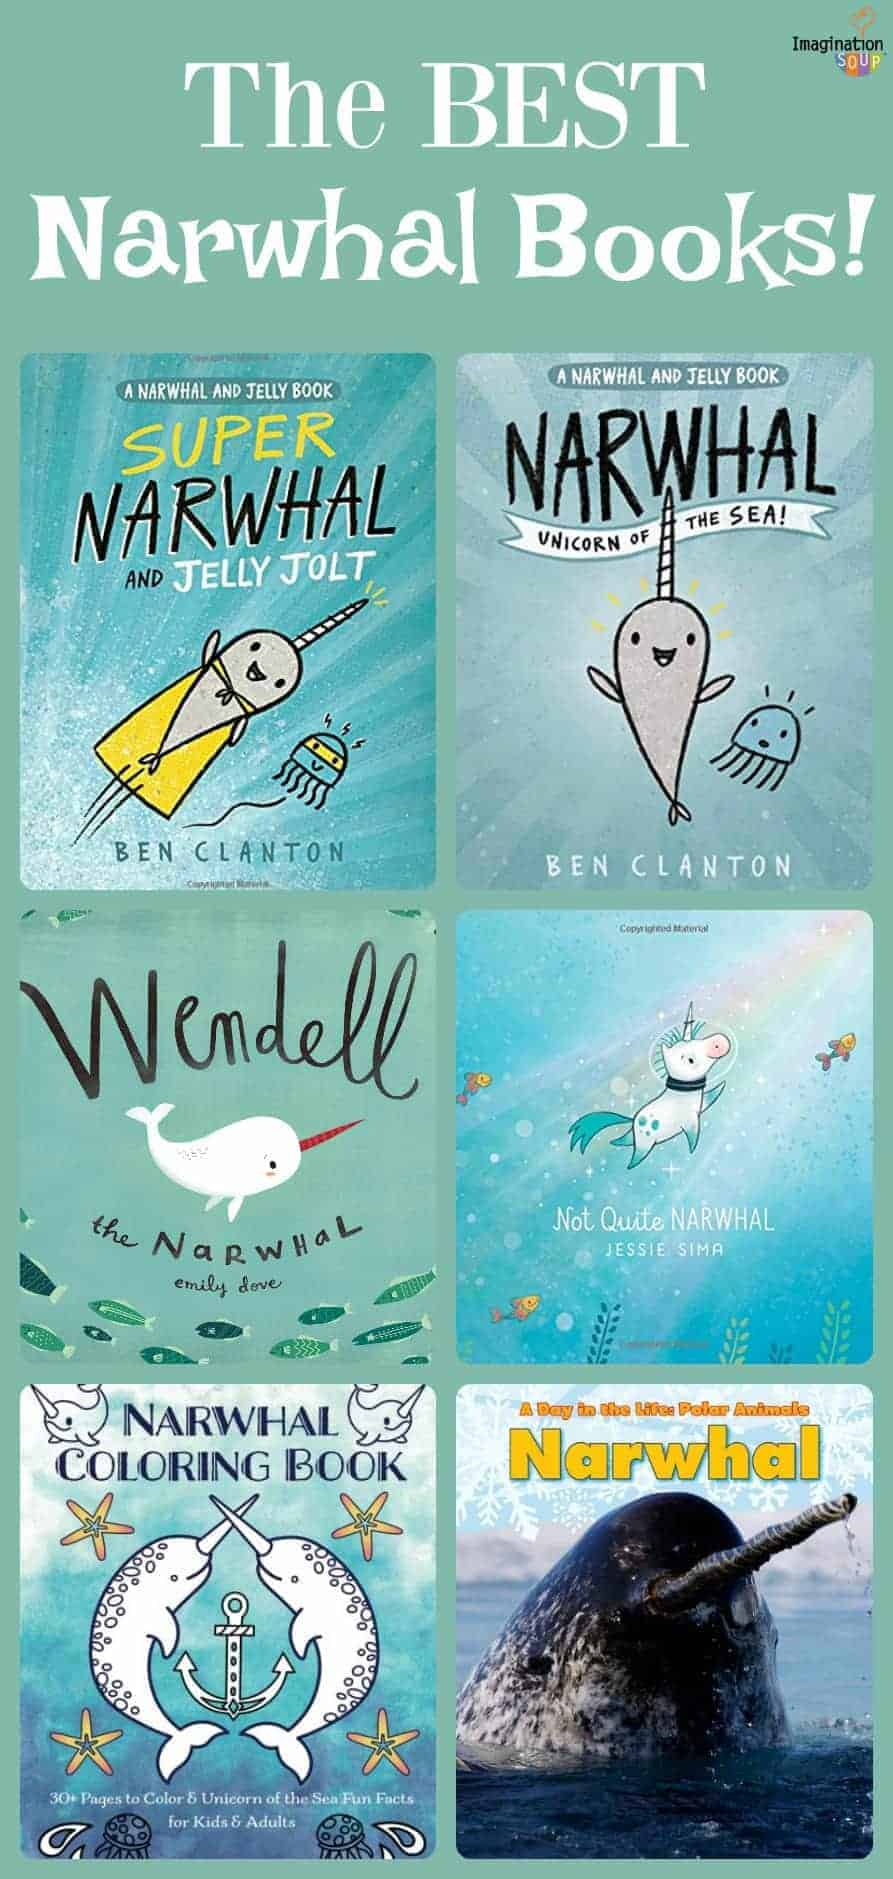 the best narwhal books for kids (and other fun narwhal gift ideas)